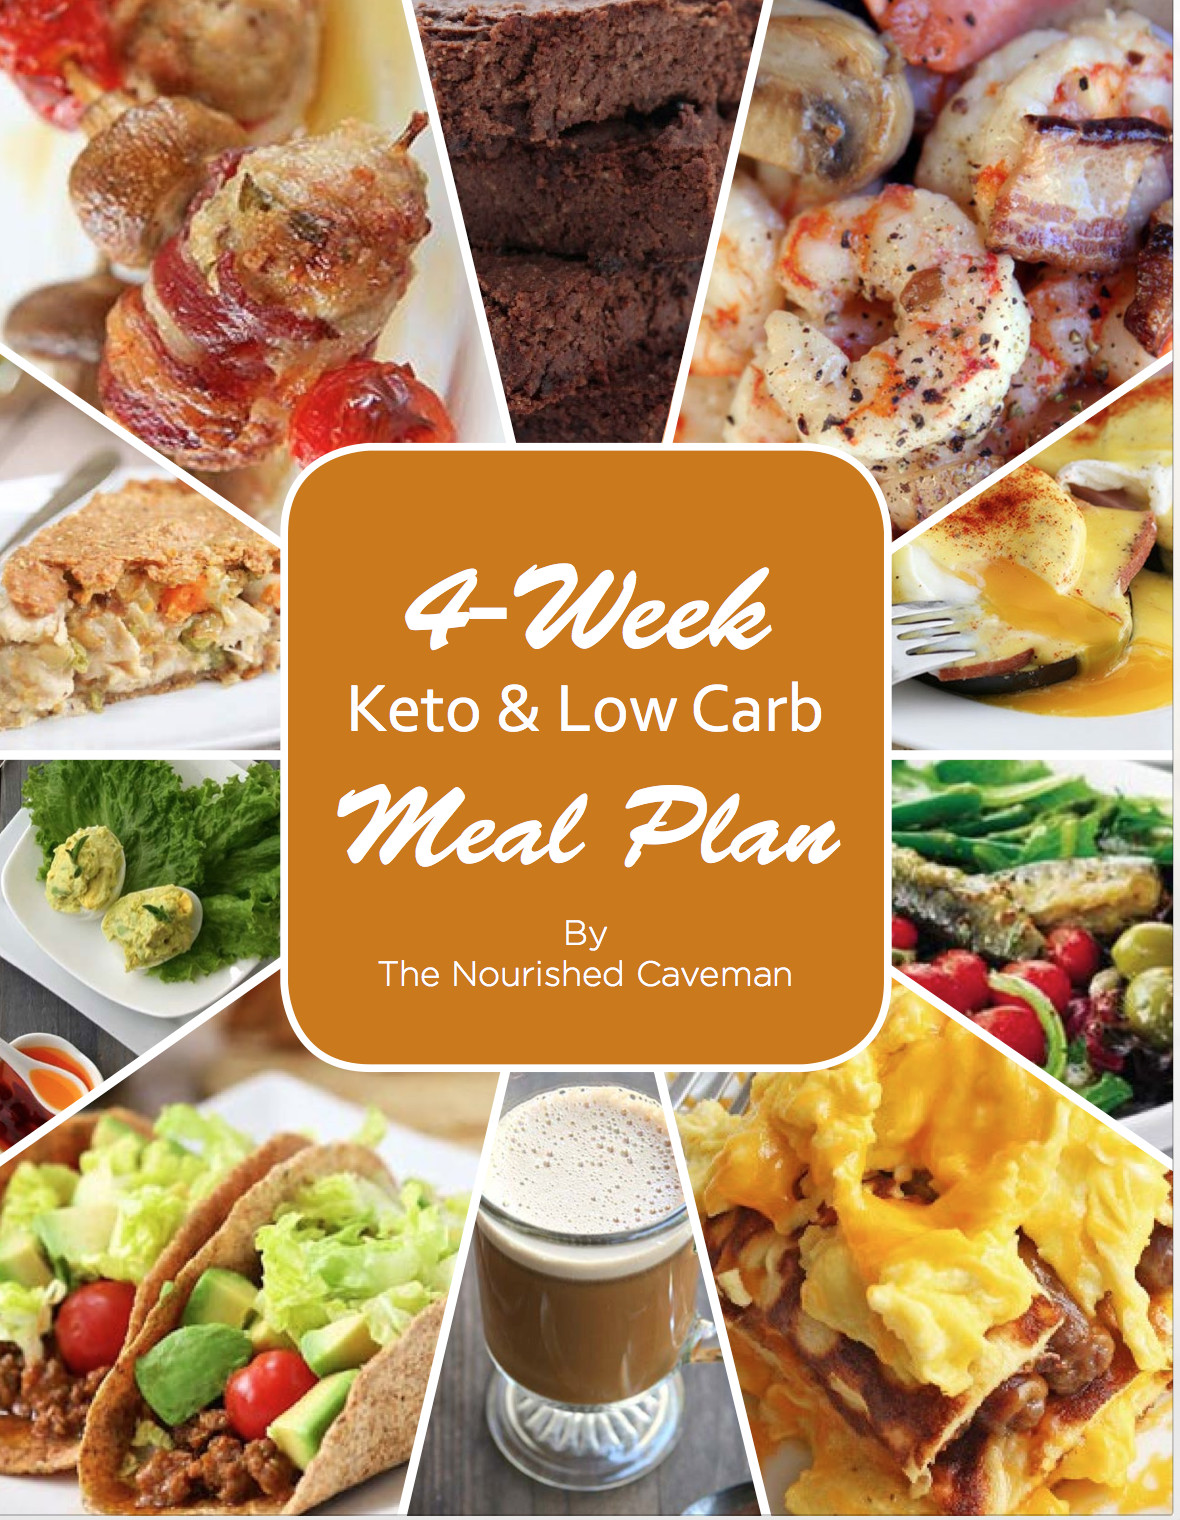 Keto Diet Snacks  4 Week Keto & Low Carb Meal Plan The Nourished Caveman